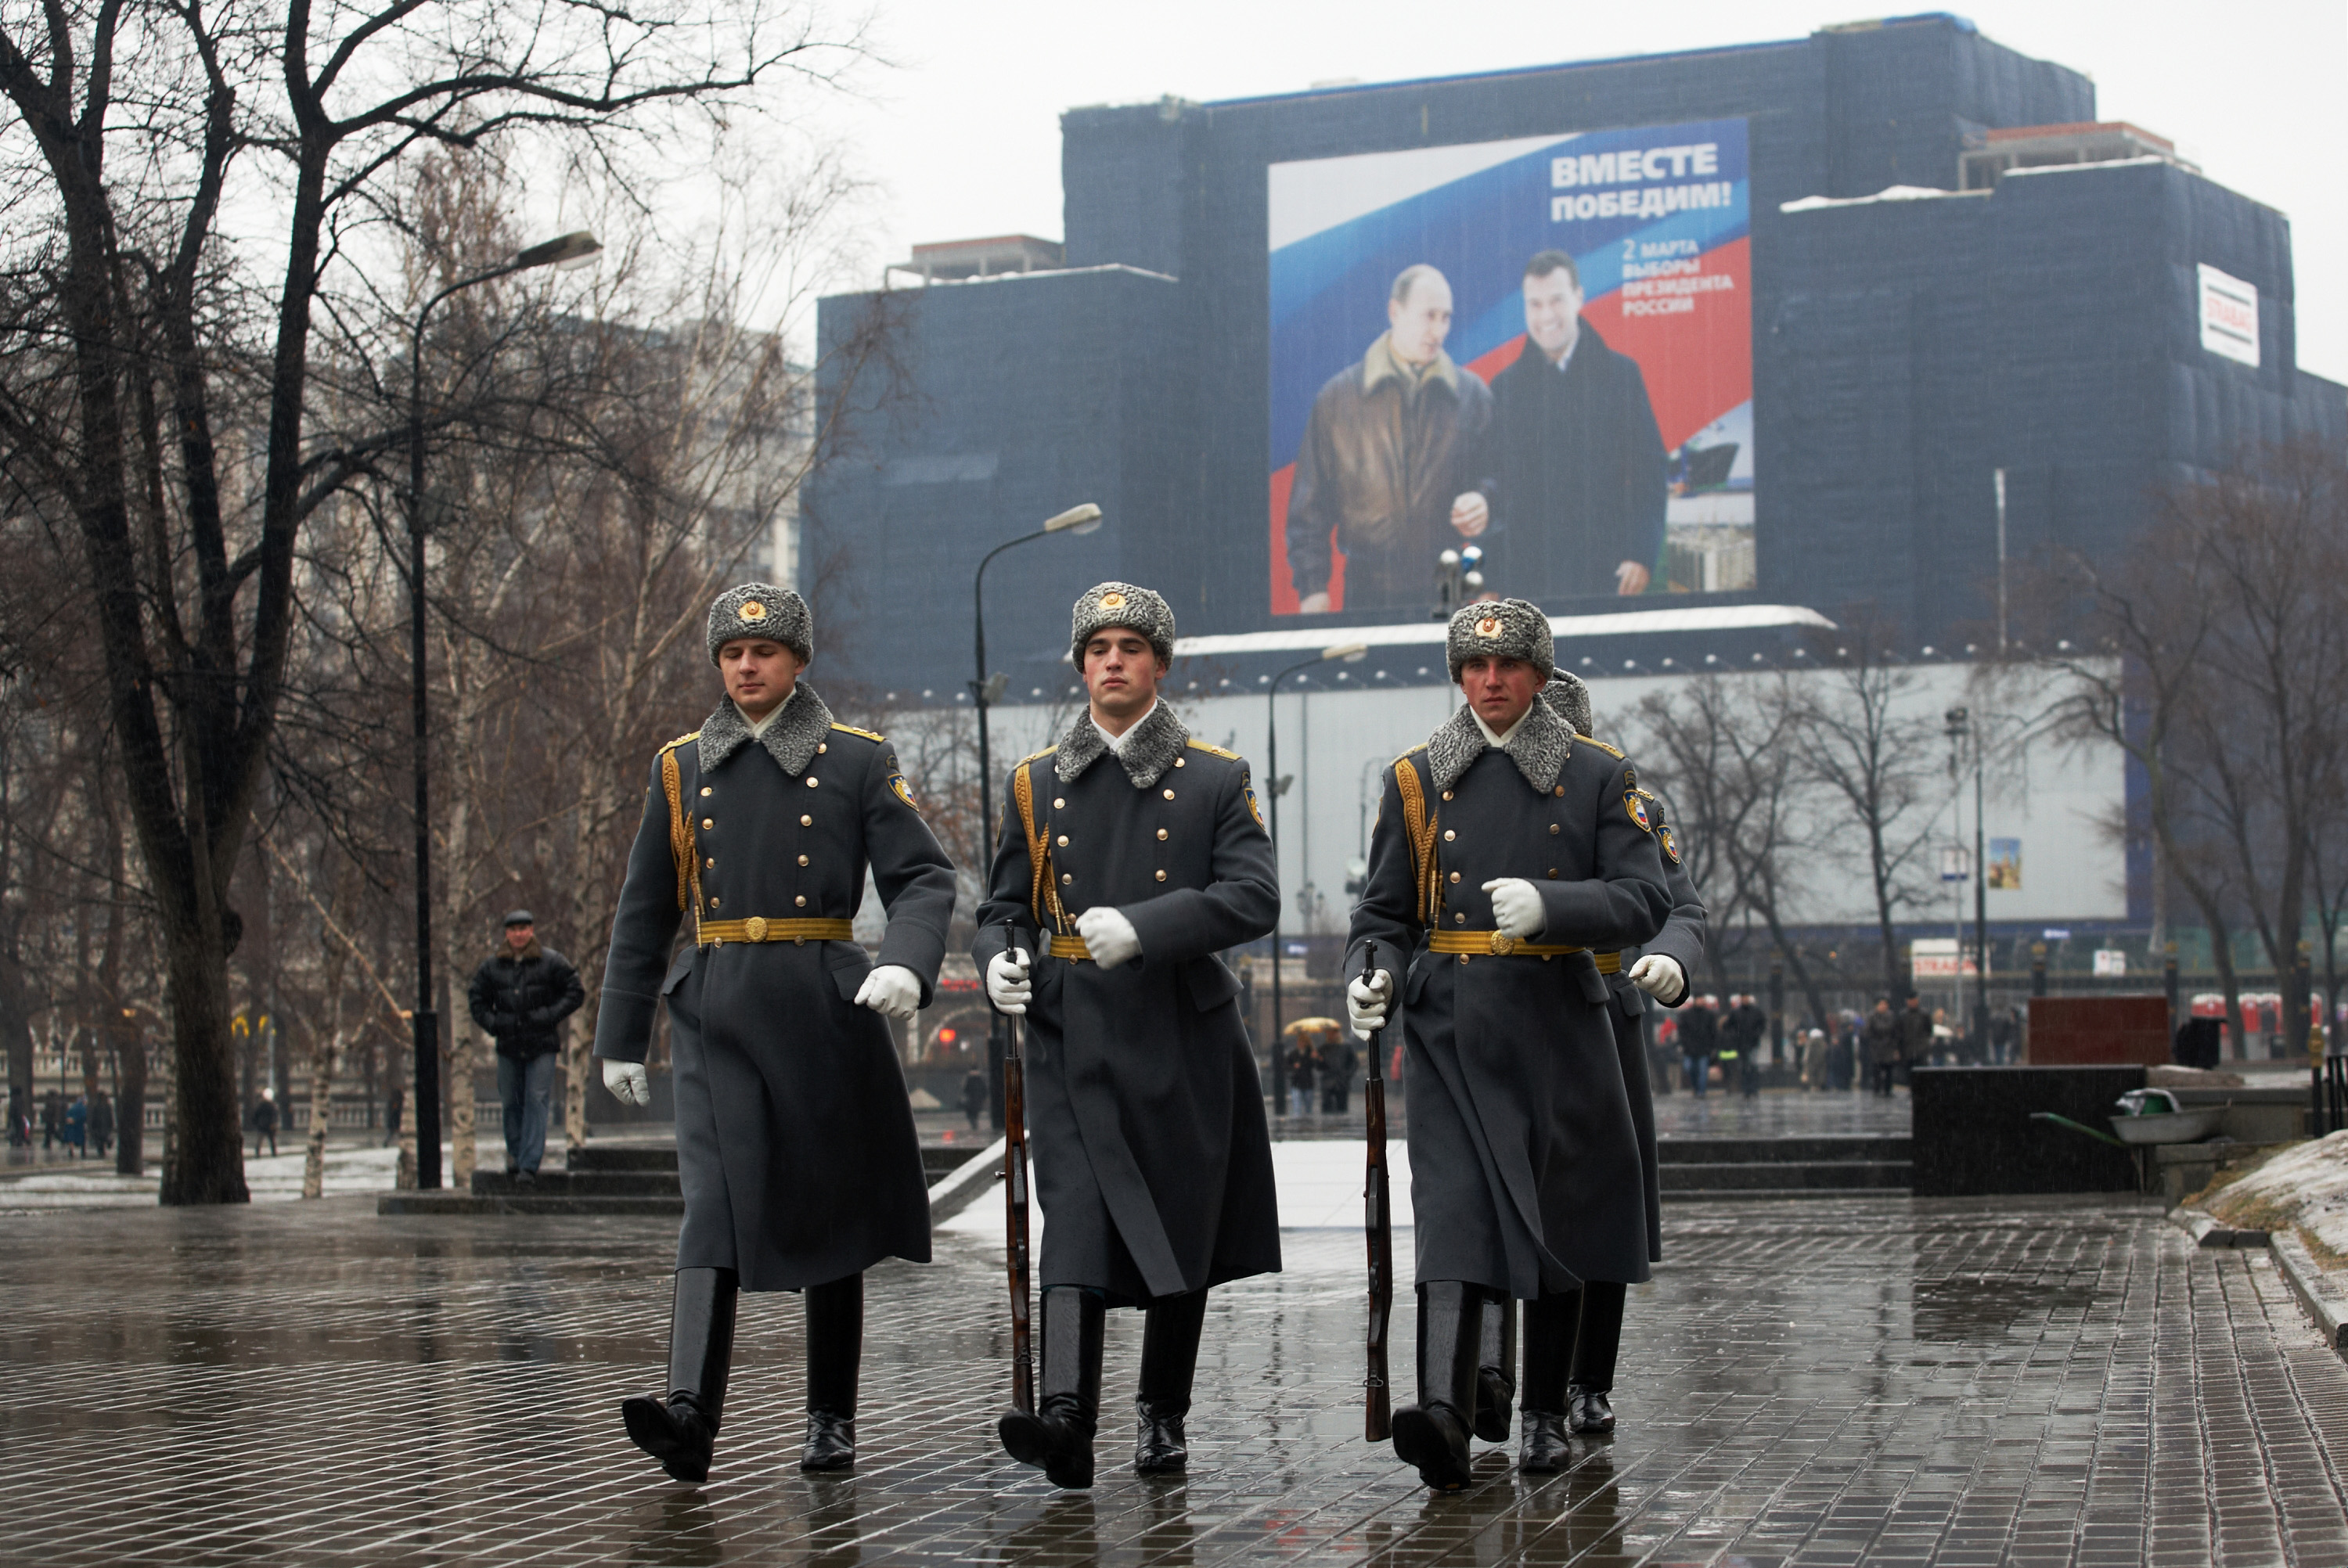 Guards of honor walk past a large election poster.